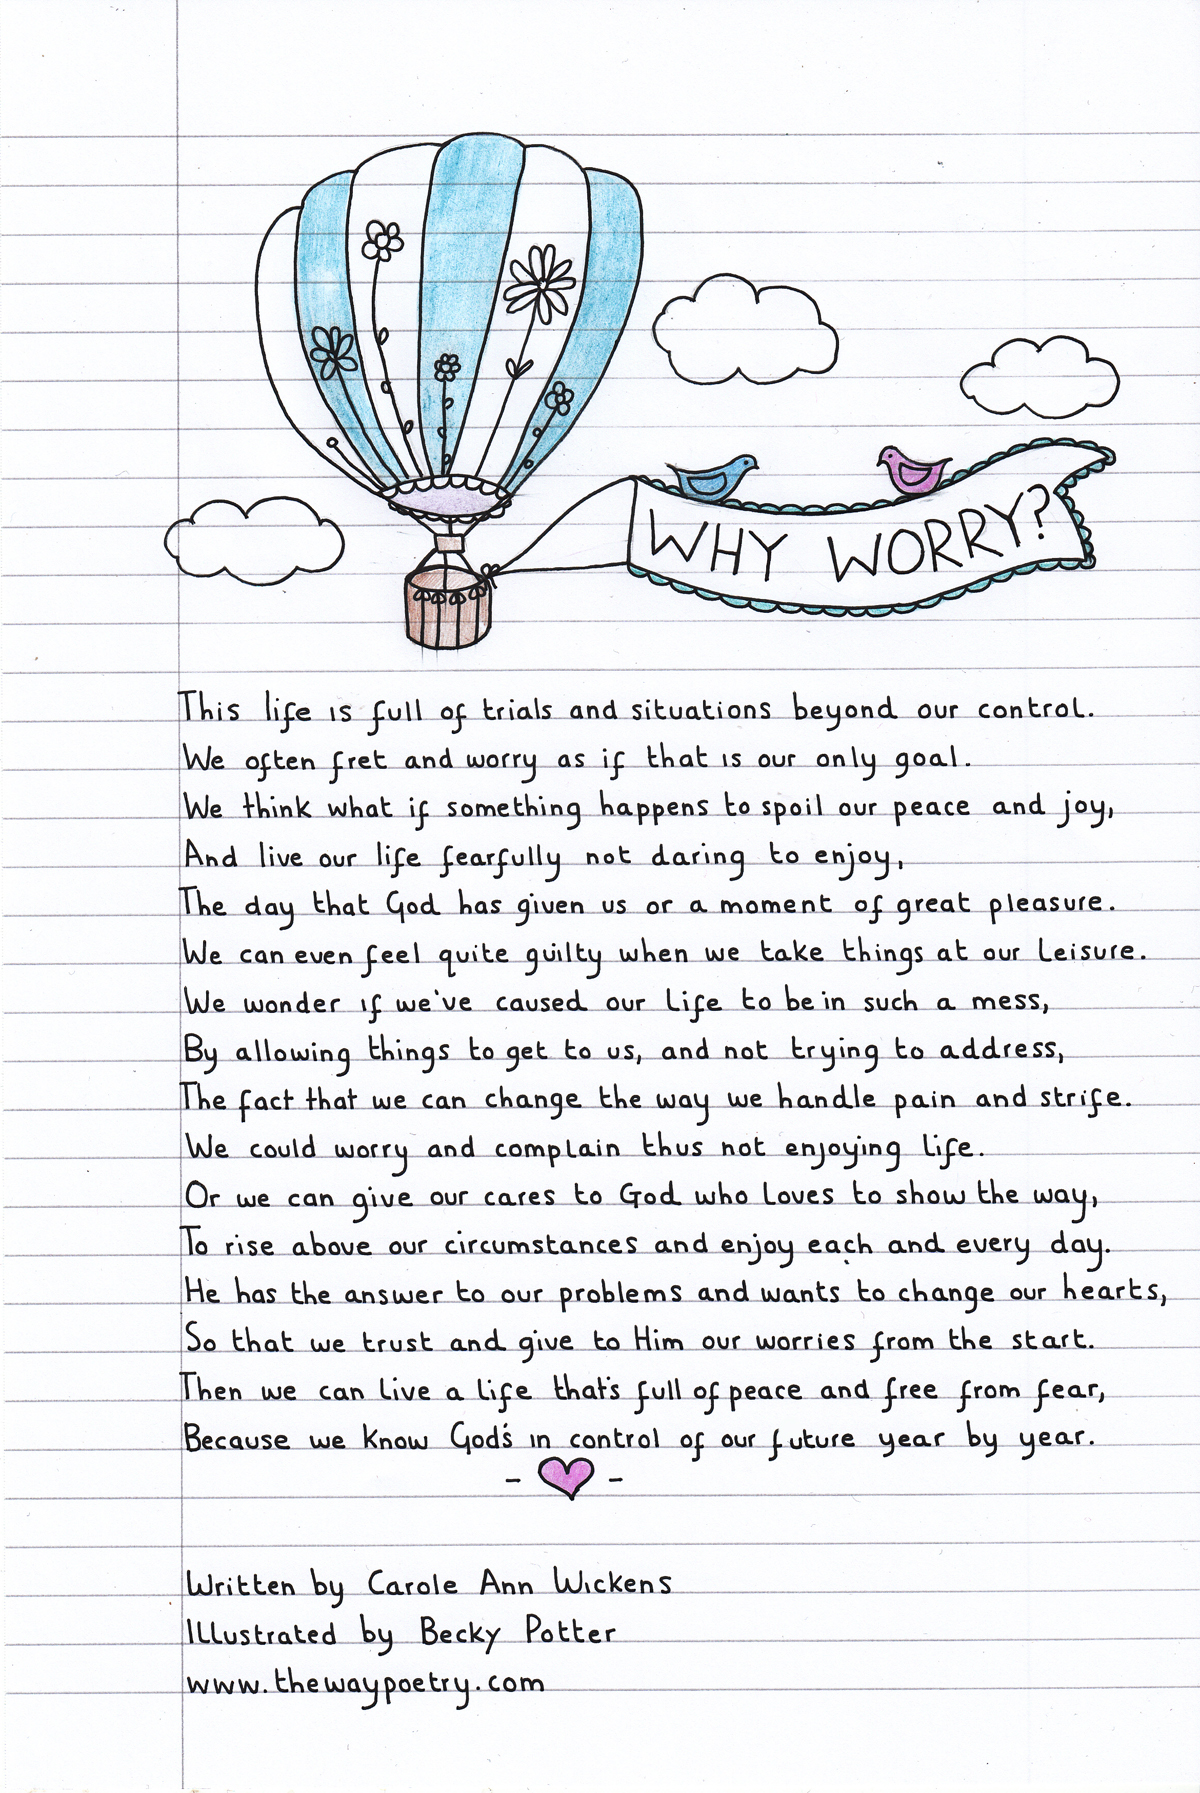 Why Worry? by Carole Ann Wickens